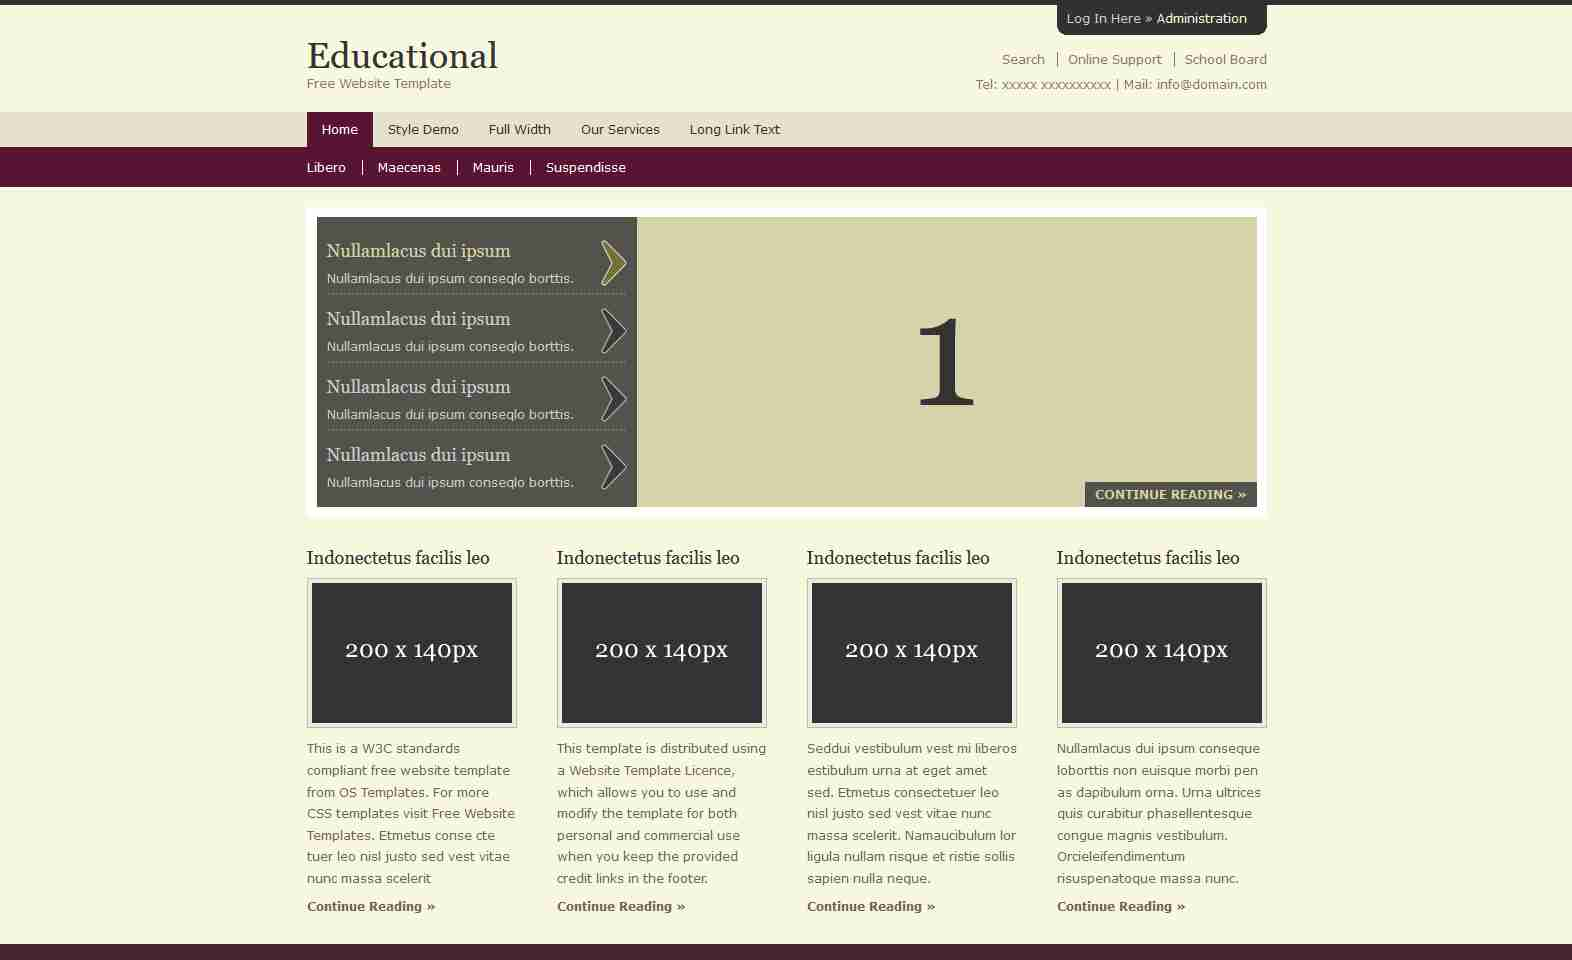 Education Website Design Using HTML/CSS/JQUERY/BOOTSTRAP